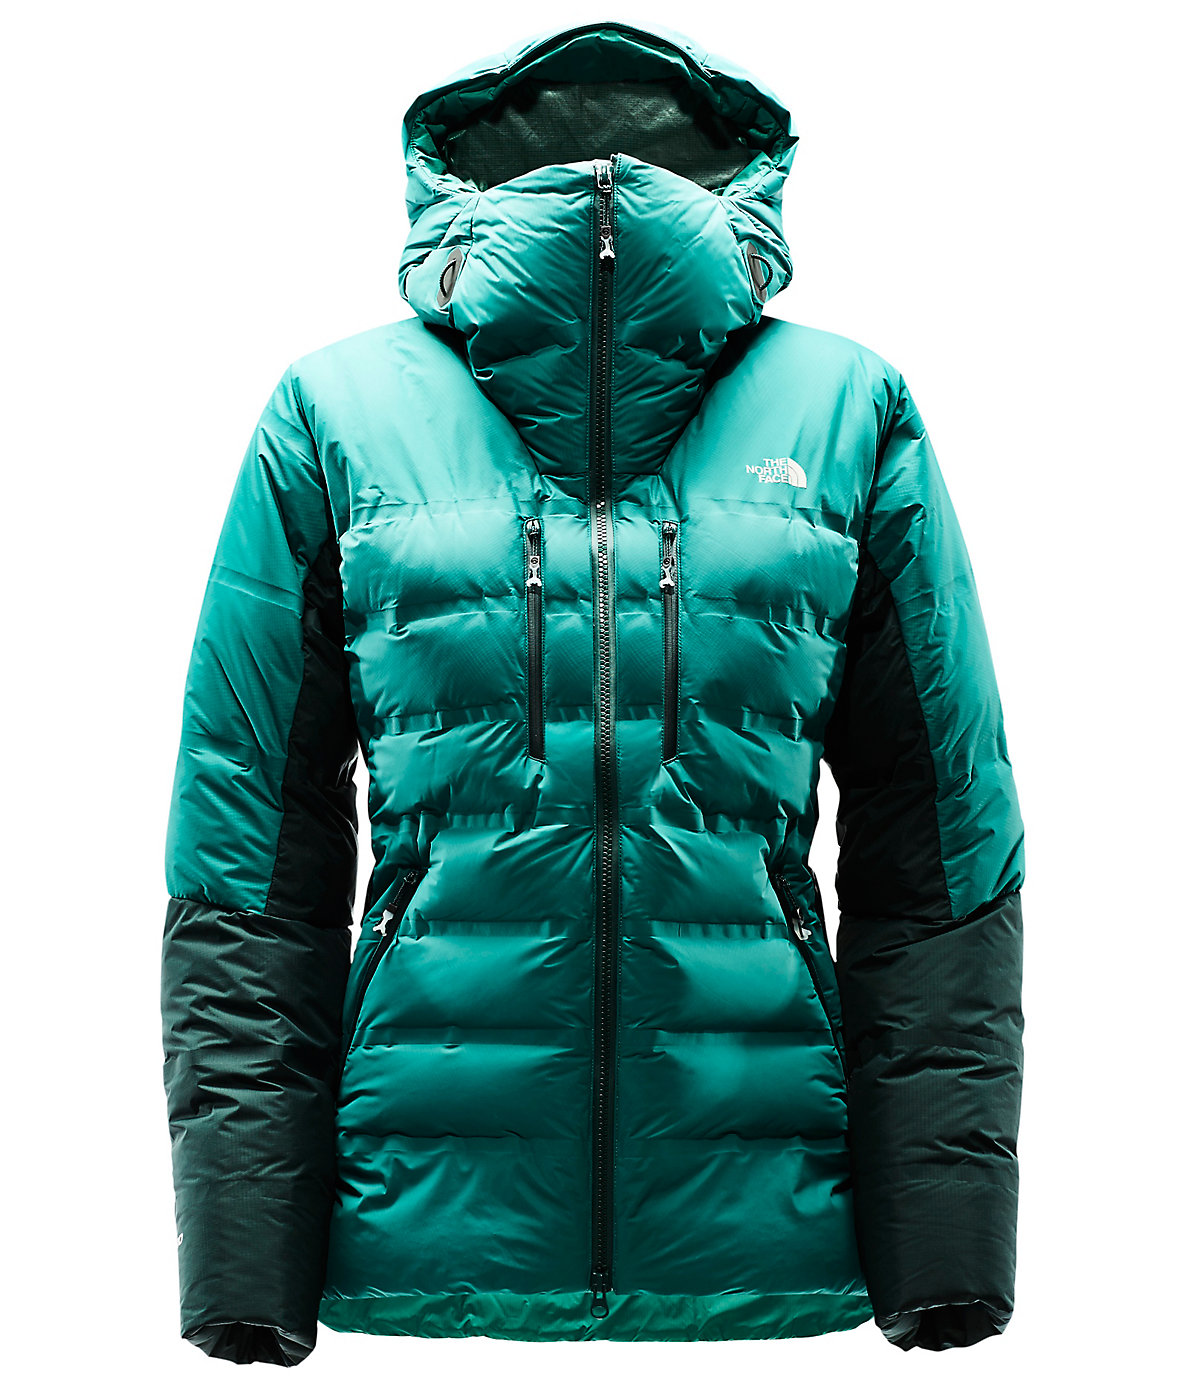 North Face Ultimate Travel Jacket Review